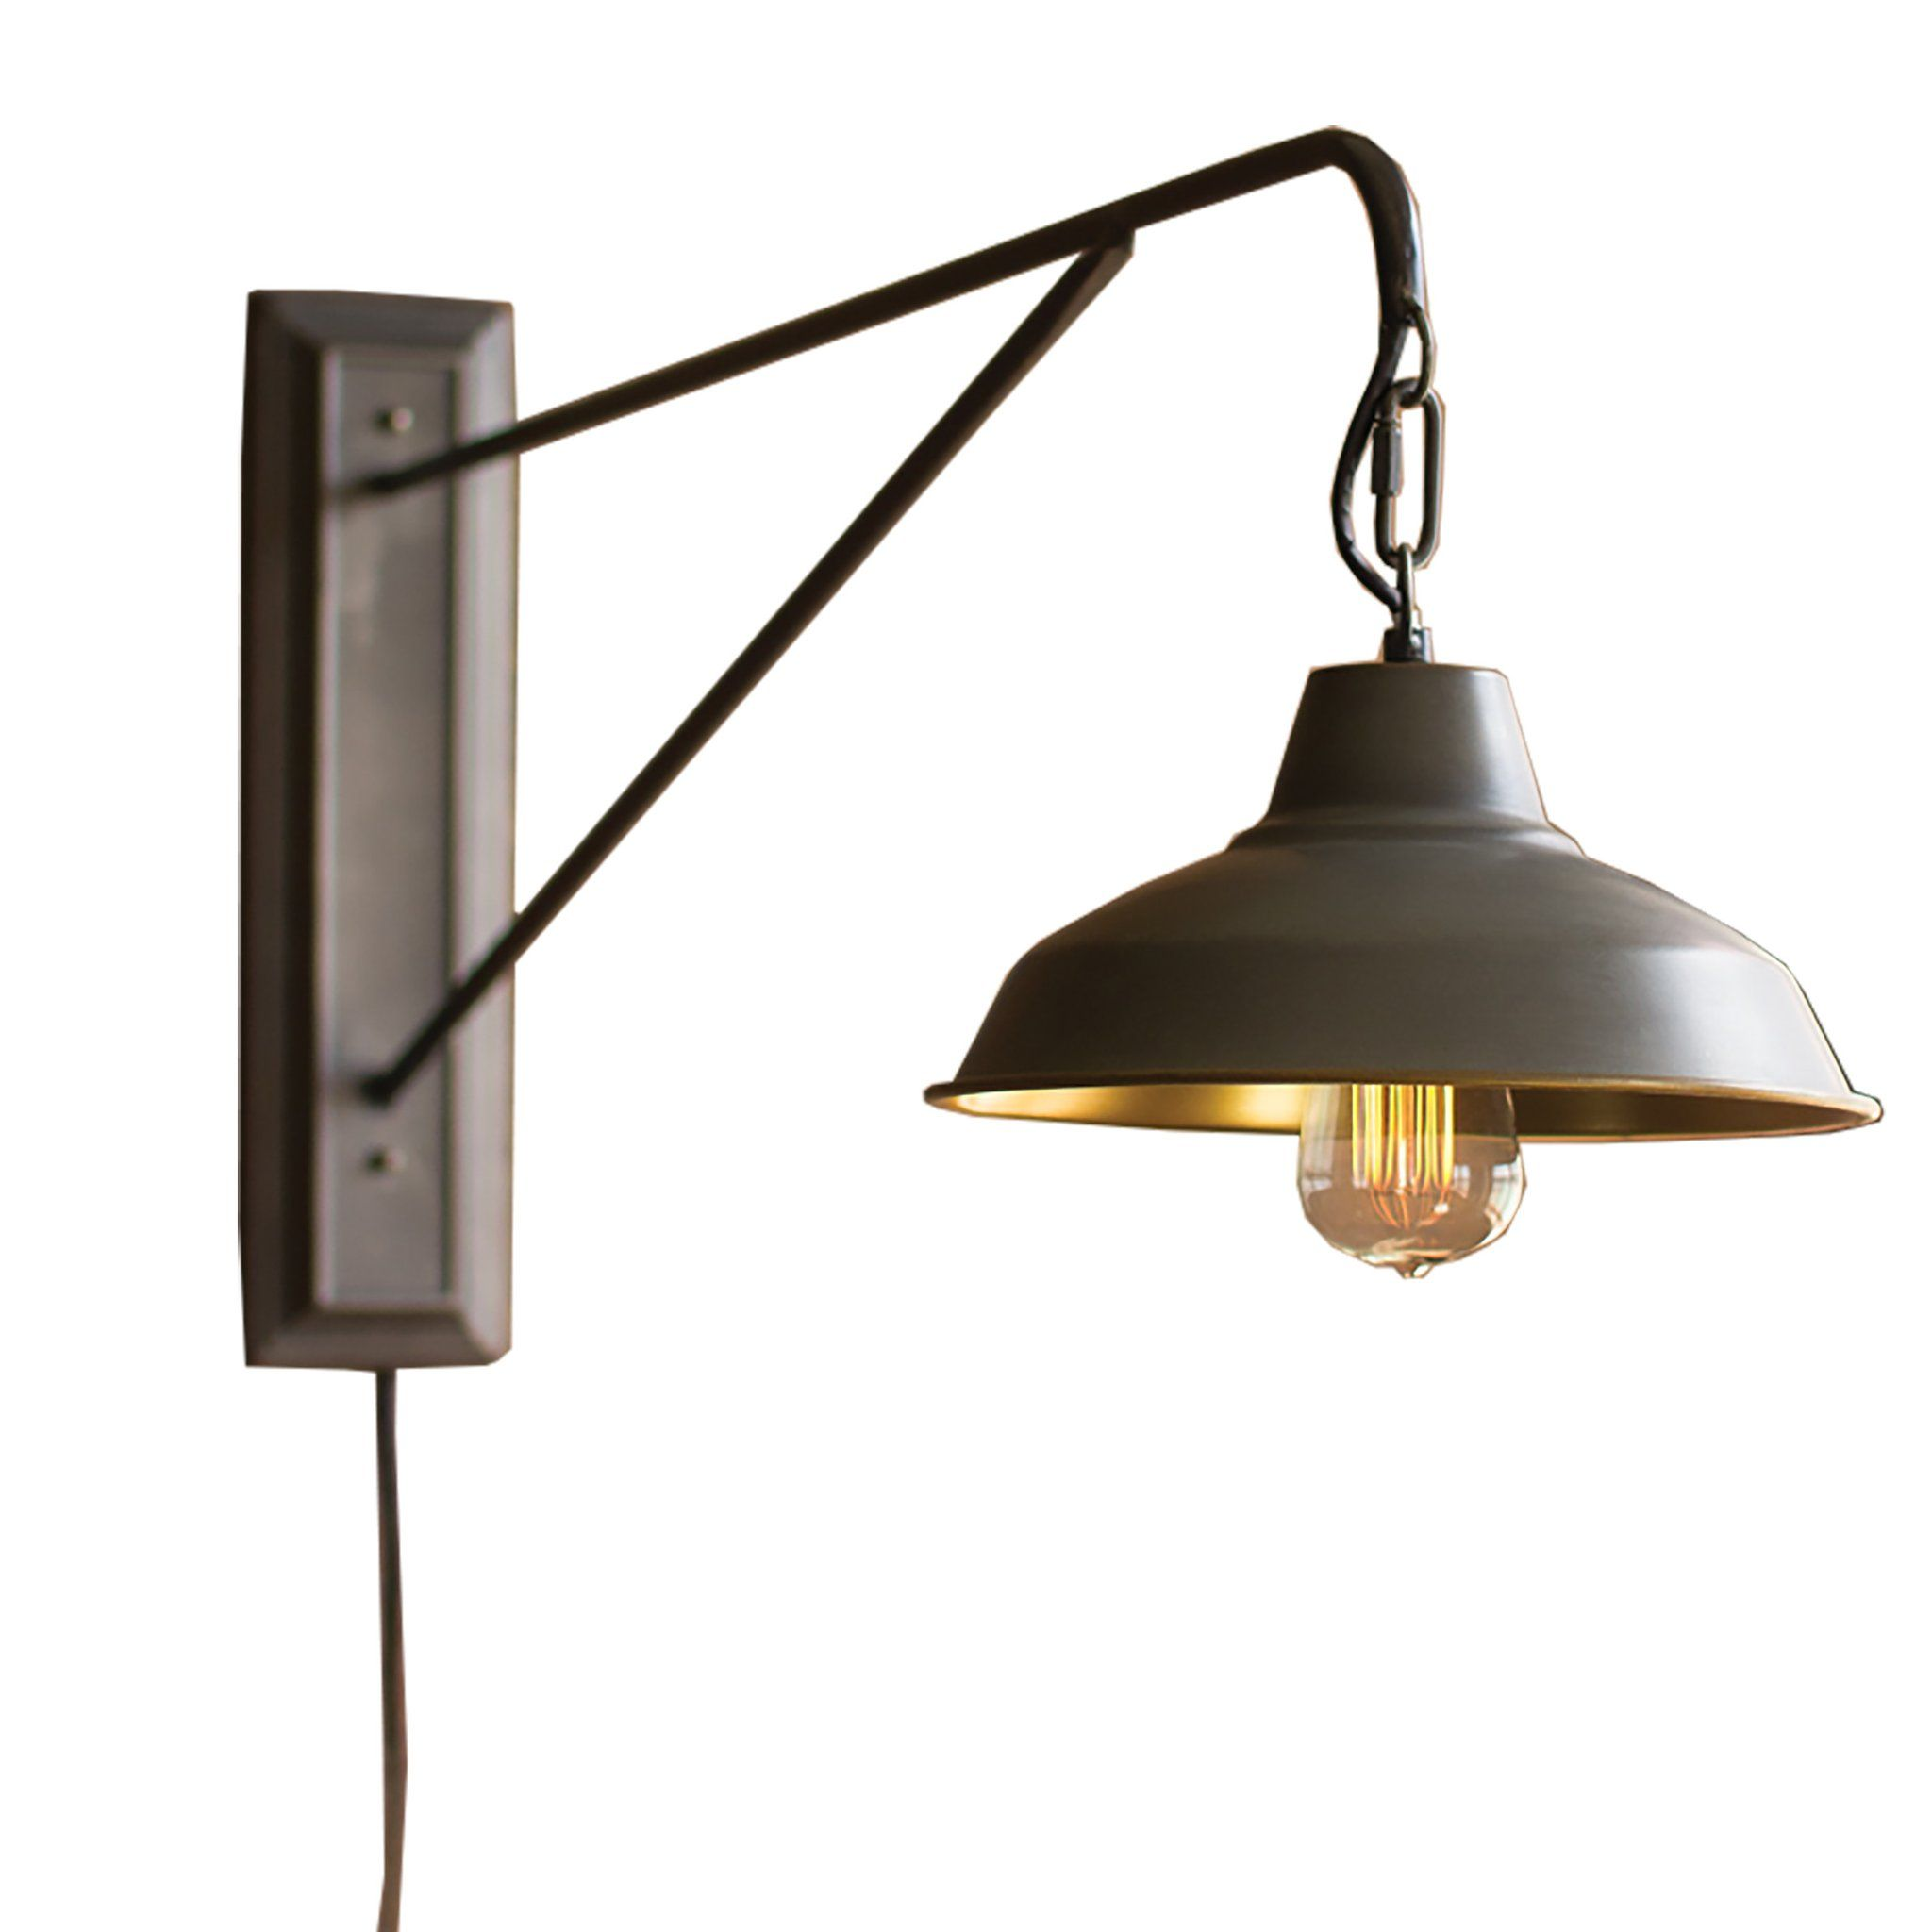 Farmhouse industrial modern plug in wall sconce whether